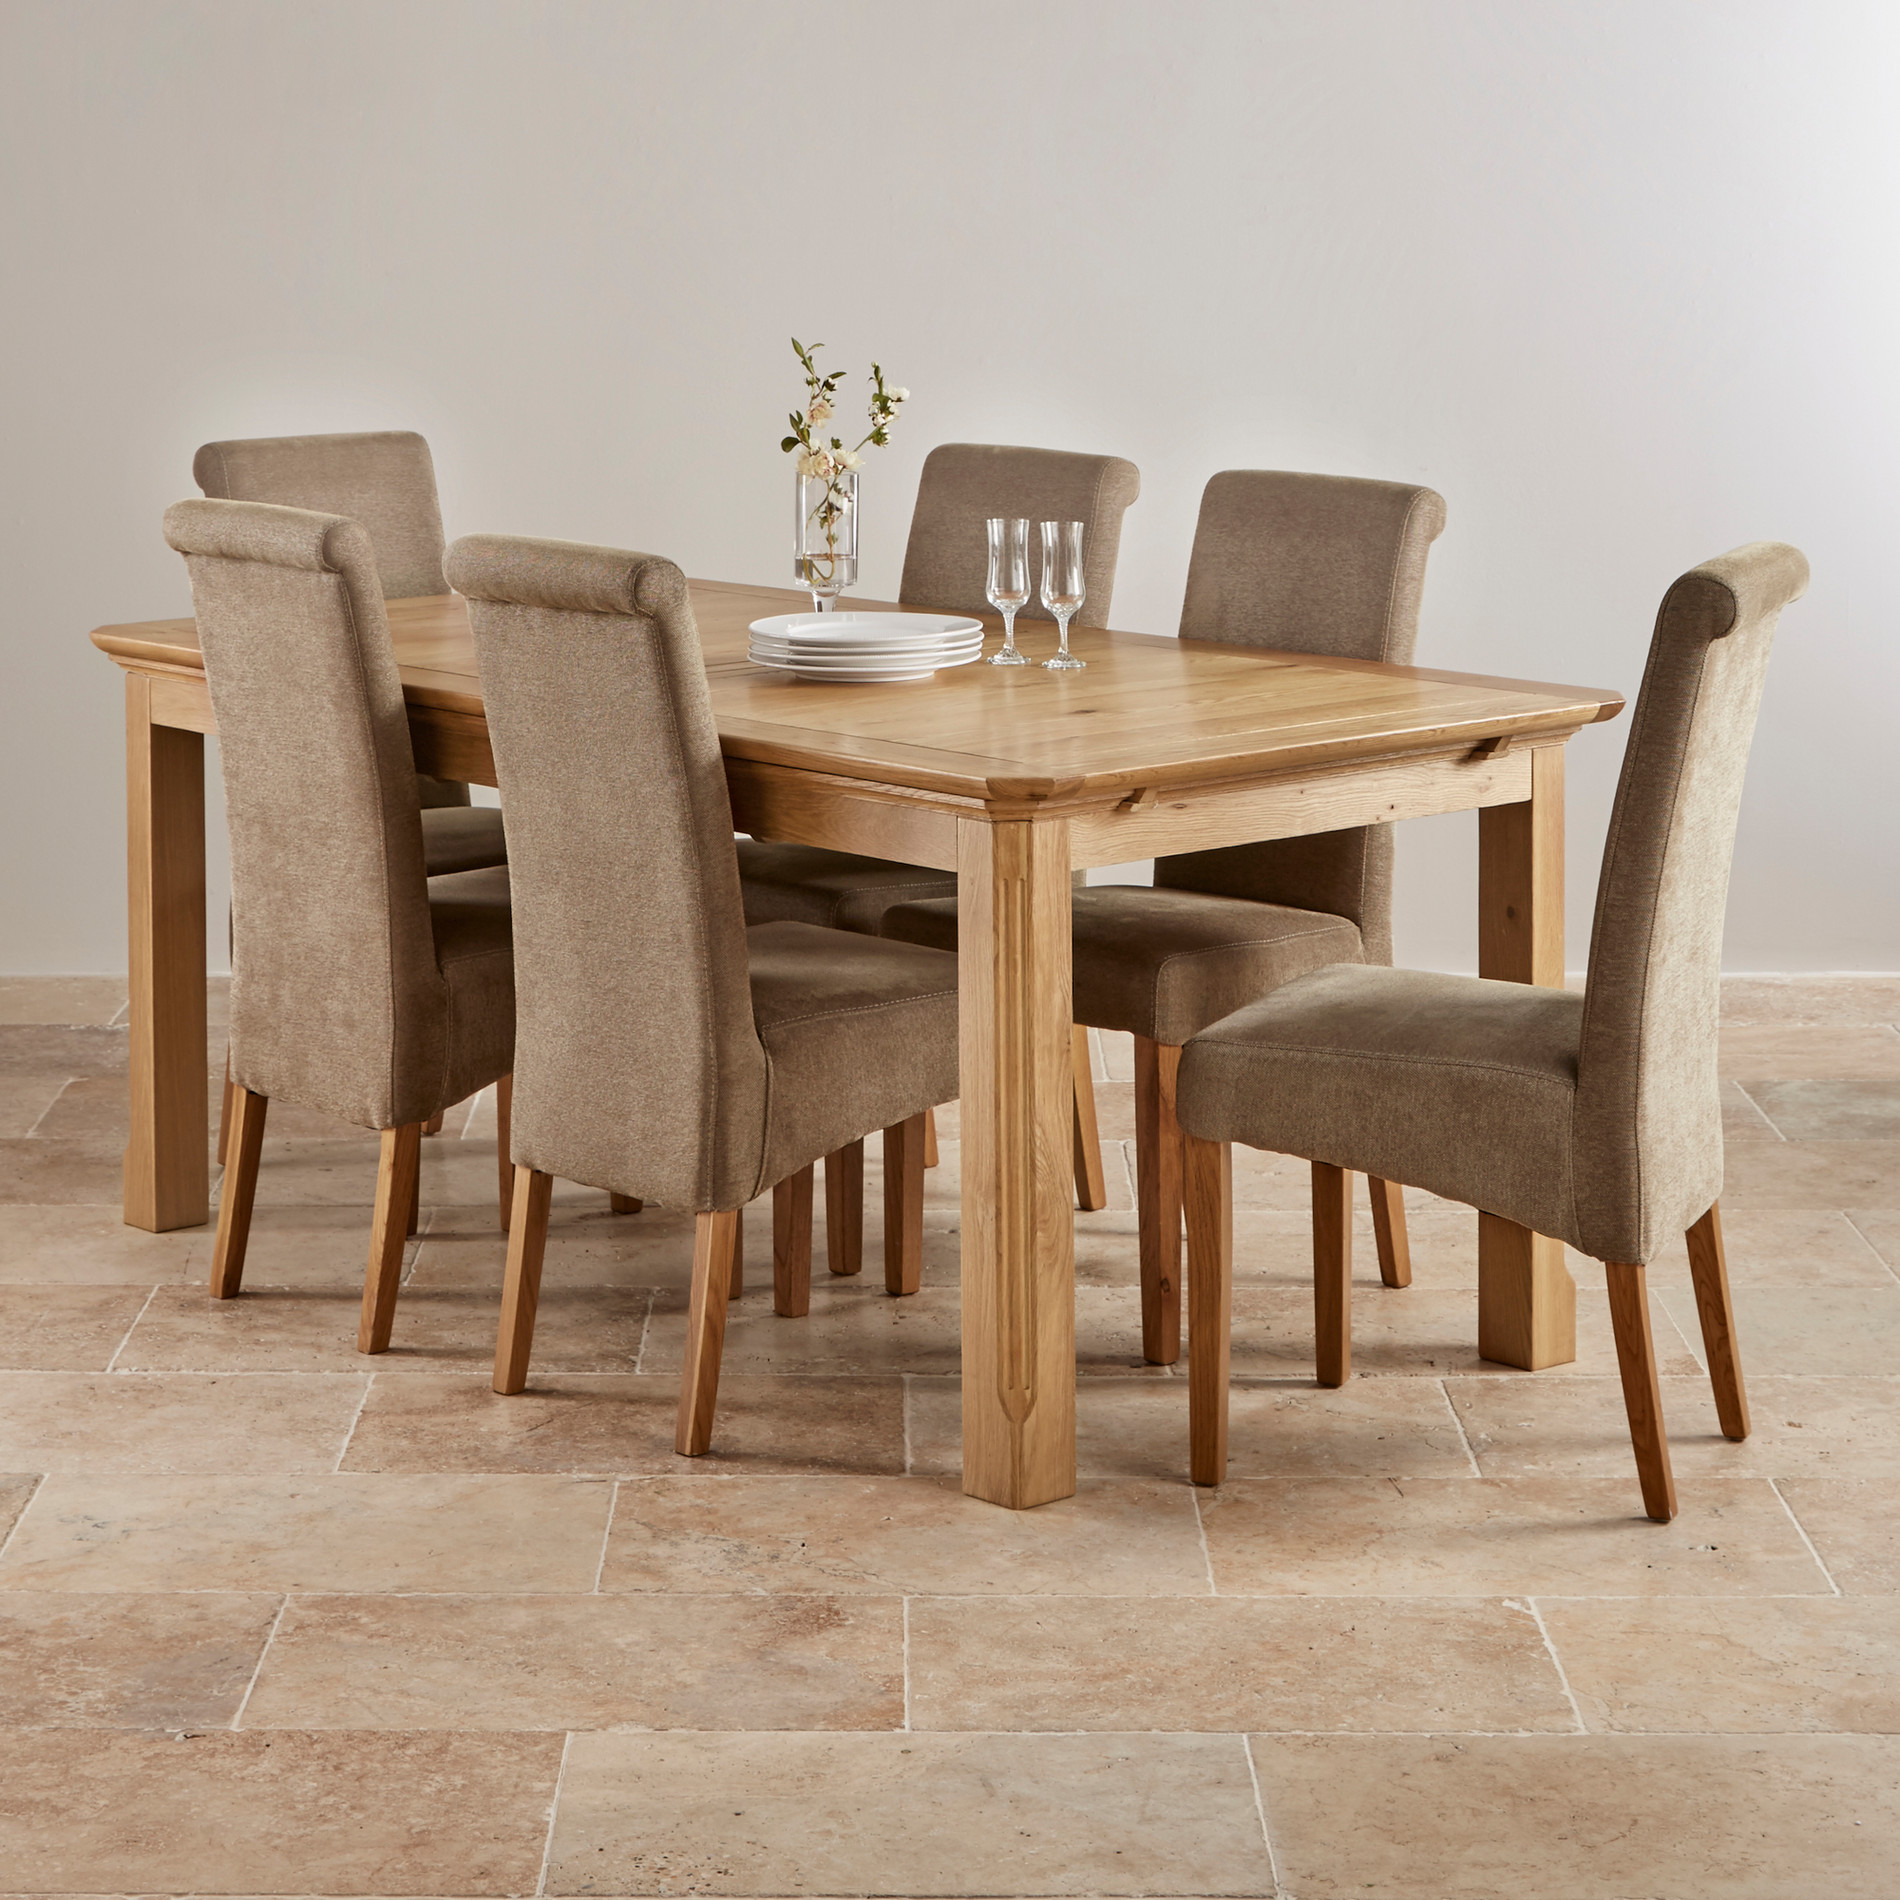 edinburgh natural solid oak dining set 6ft extending table with 6